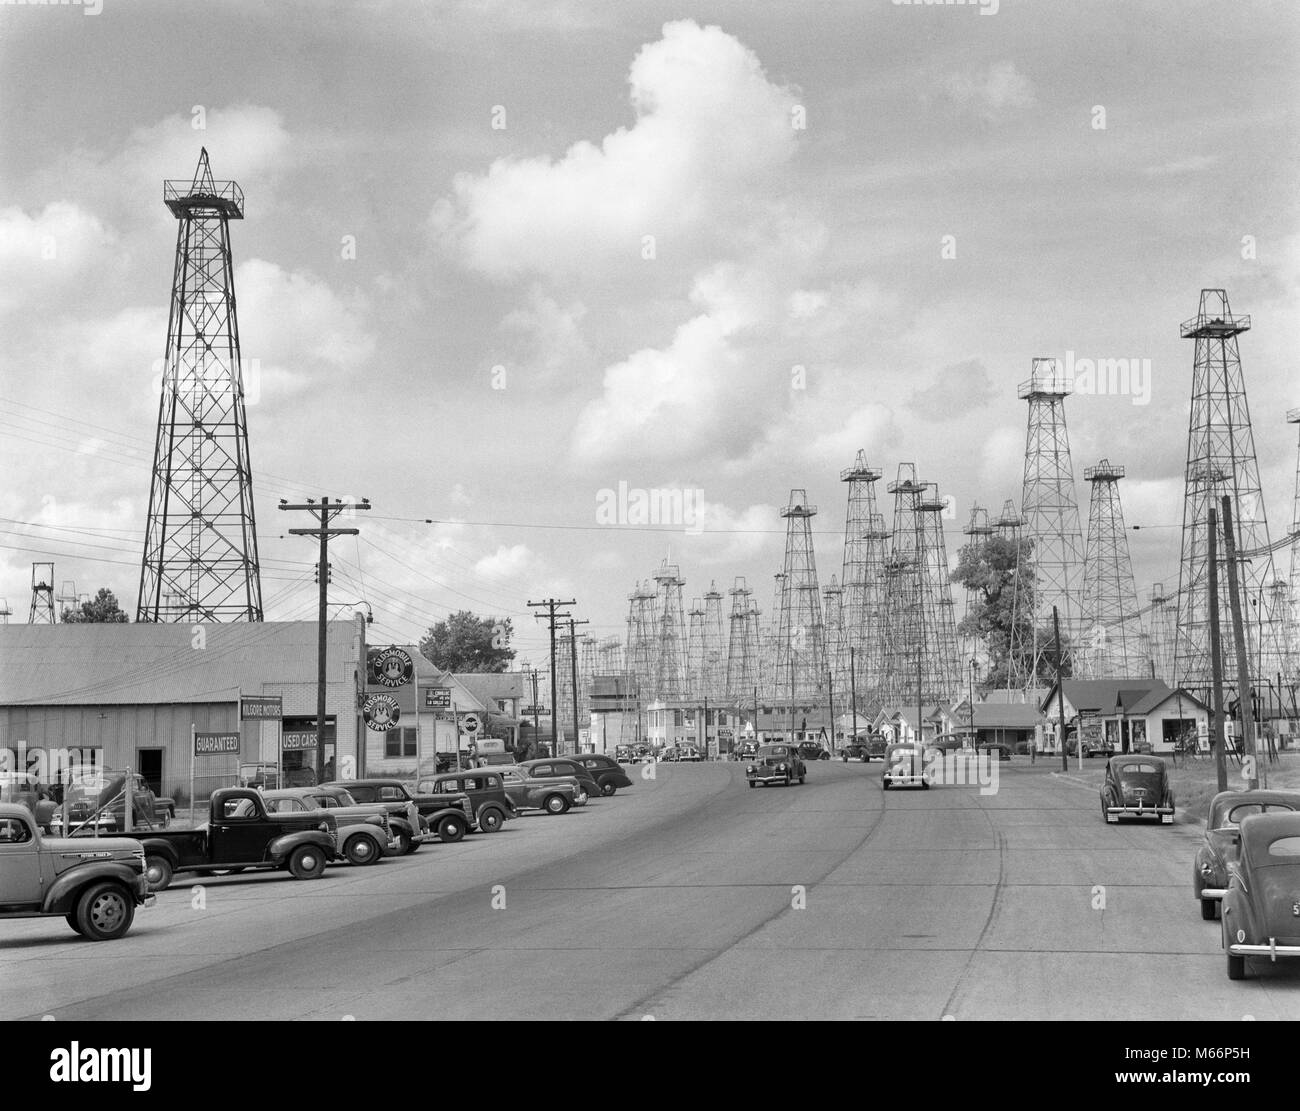 1940s HIGHWAY THROUGH FOREST OF OIL DERRICKS KILGORE TEXAS USA - q41356 CPC001 HARS RIG RIGS - Stock Image